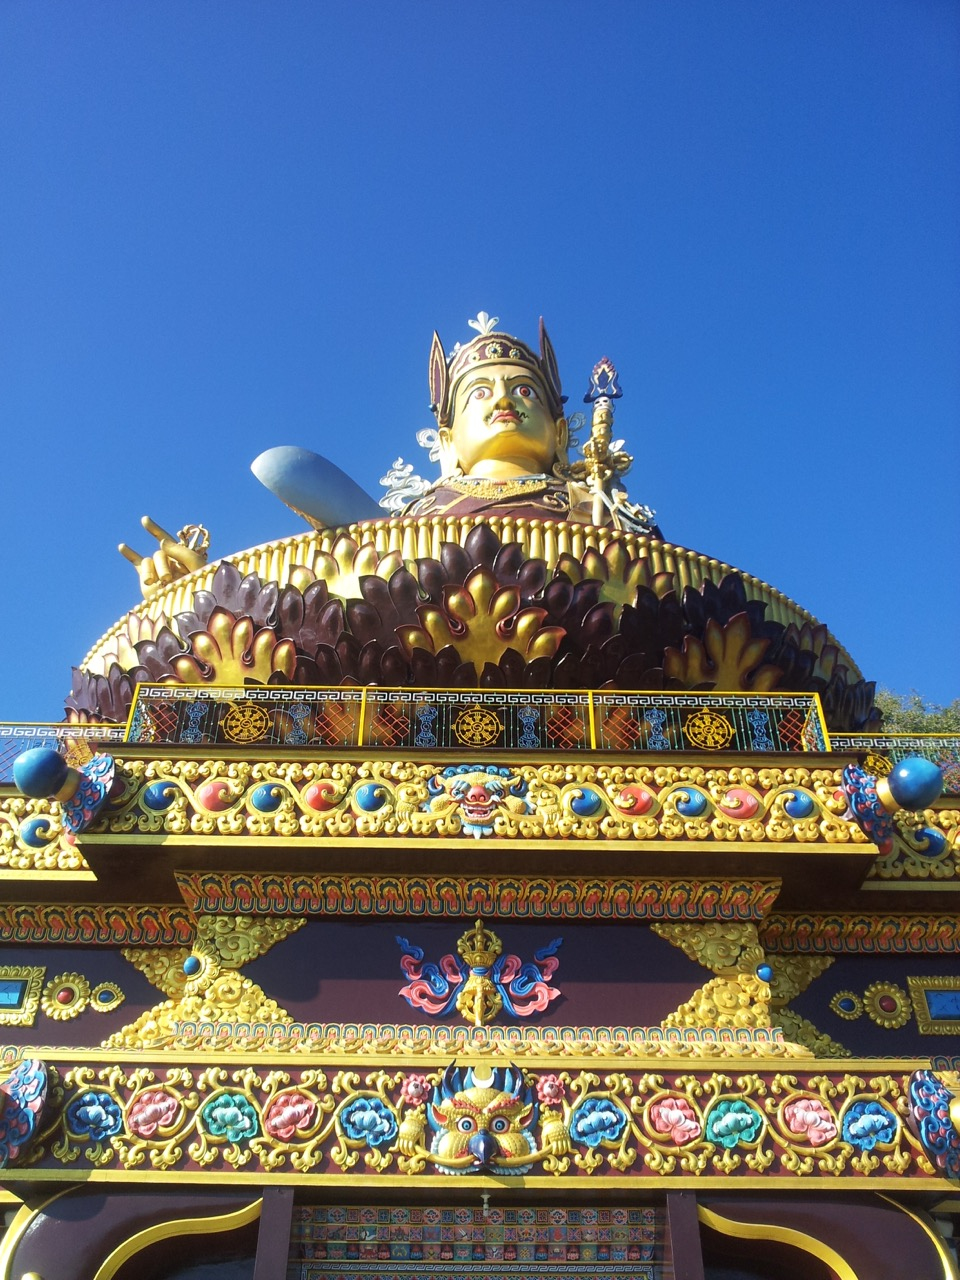 The idol of Padmasambhava from the base of the monastery.